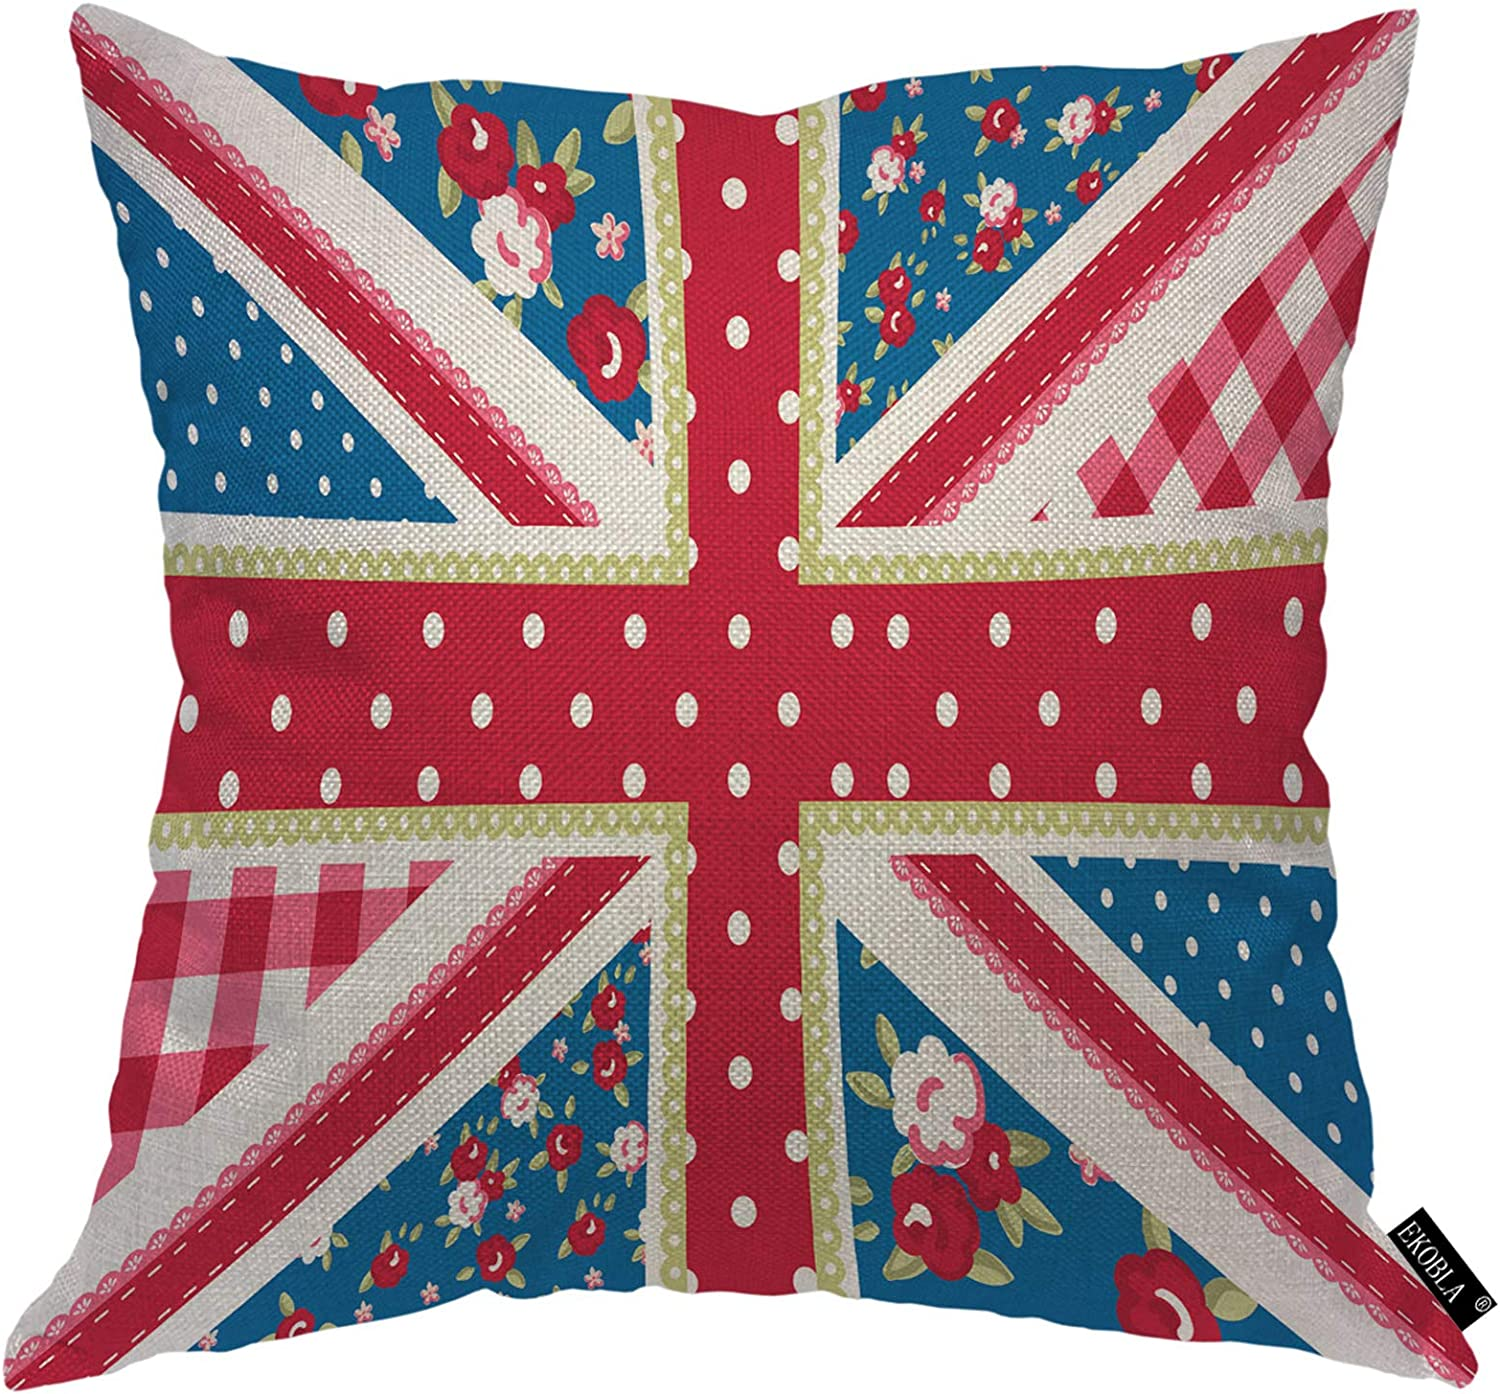 EKOBLA British Flag Throw Pillow Cover Cute Shabby Chic Floral Style Vintage Dots Blue Background Cozy Square Cushion Case for Men Women Boys Girls Room Home Decor Cotton Linen 18x18 Inch